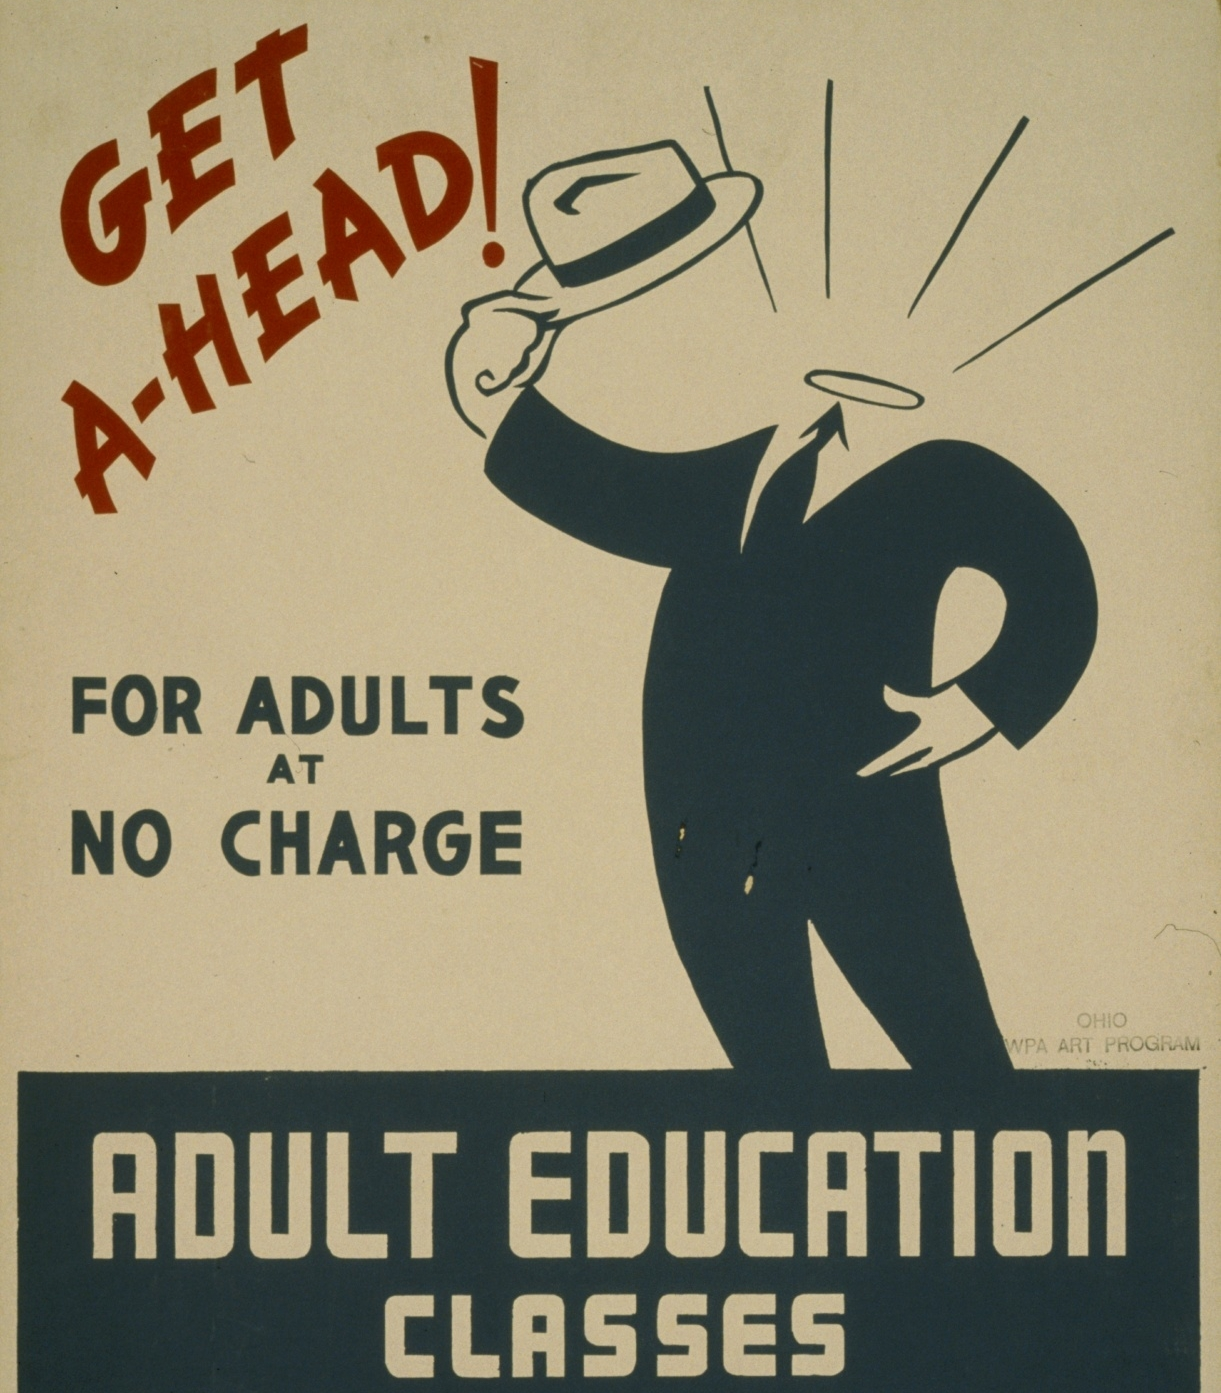 adult-education-vintage-poster-1459517259qYK.jpg